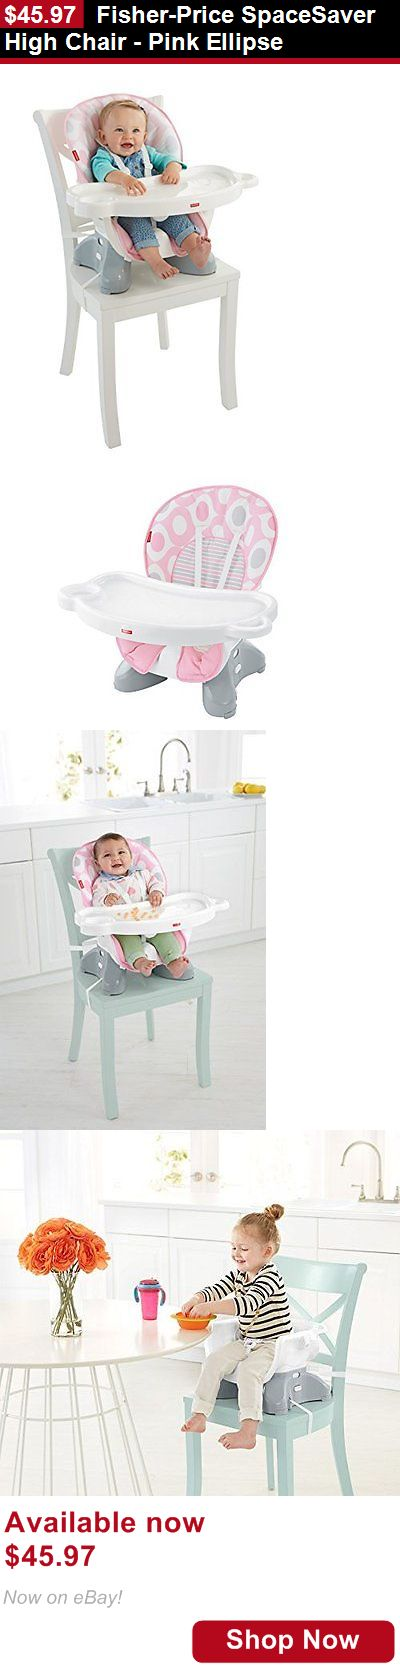 Baby High Chairs: Fisher-Price Spacesaver High Chair - Pink Ellipse BUY IT NOW ONLY: $45.97